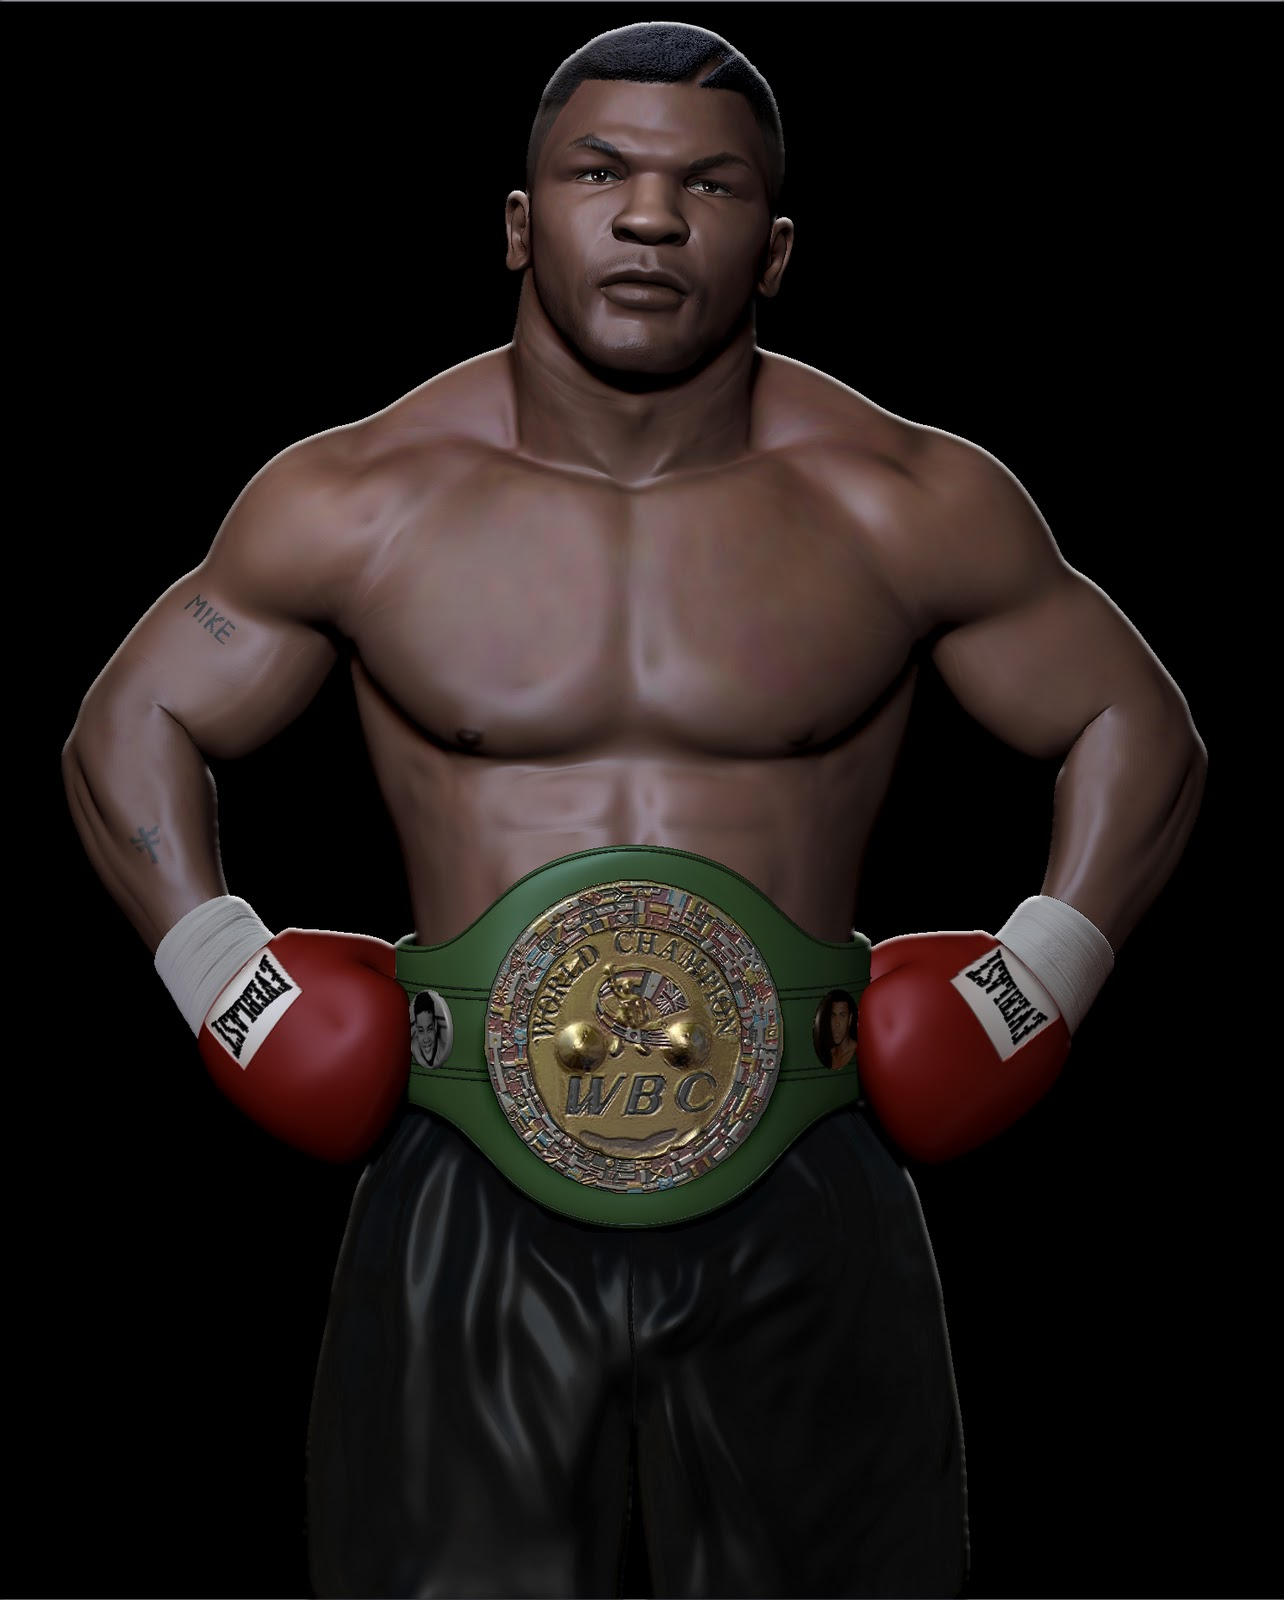 holyfield boxing poster